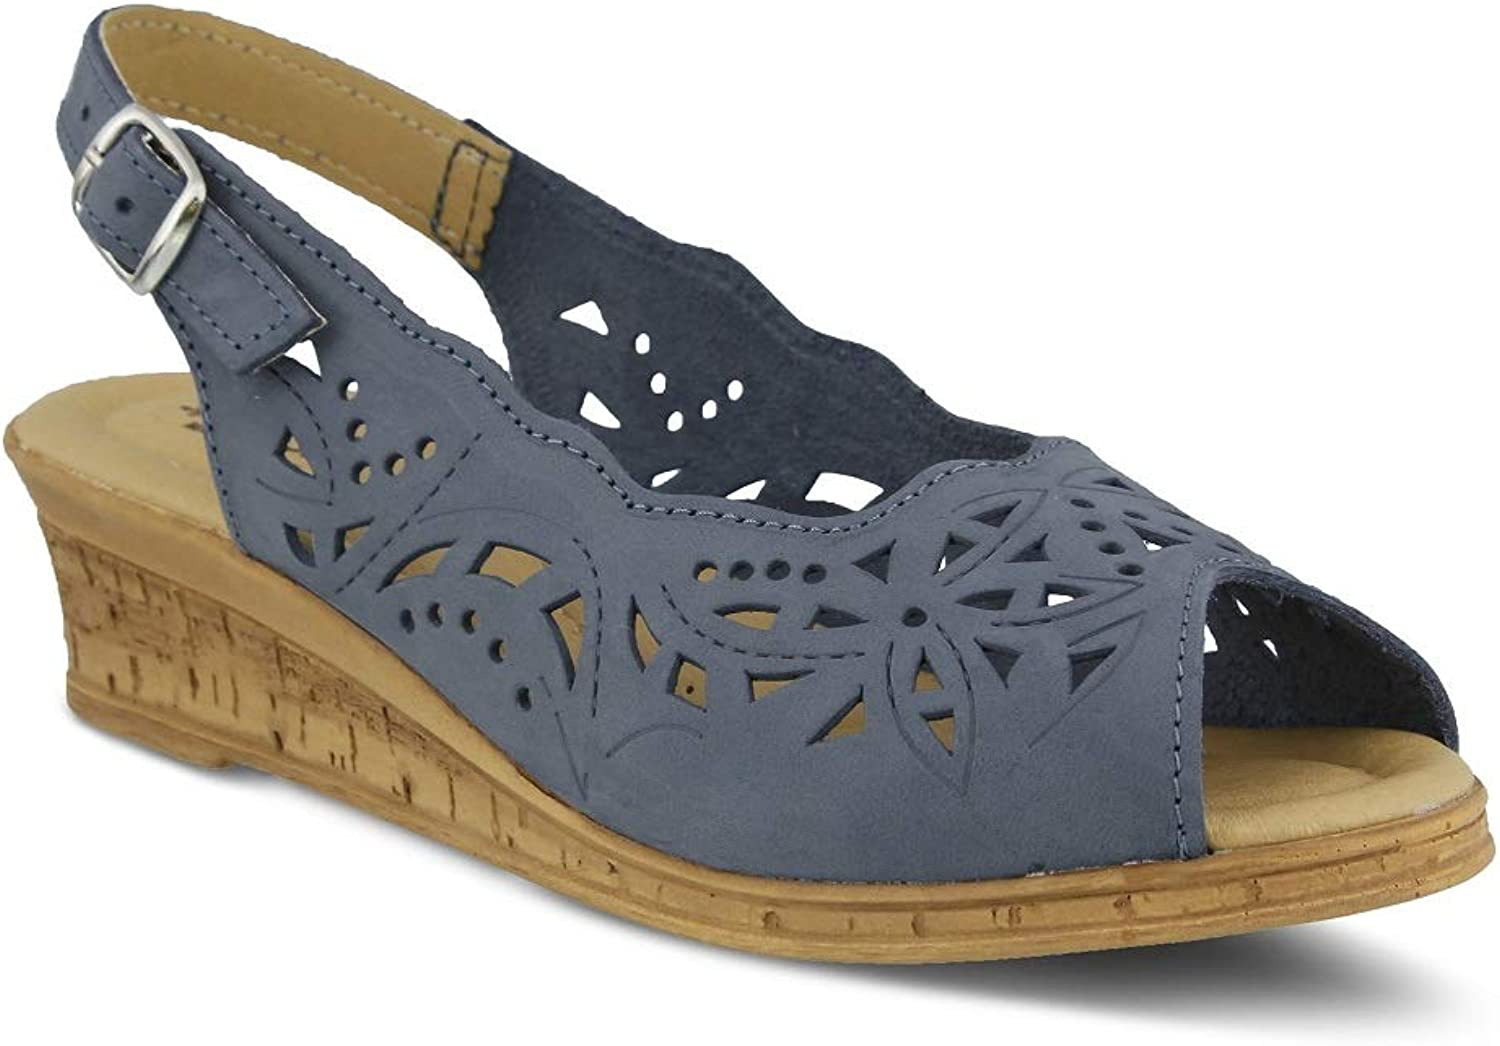 Spring Step Women's Orella Sandals   color bluee   Leather Sandals